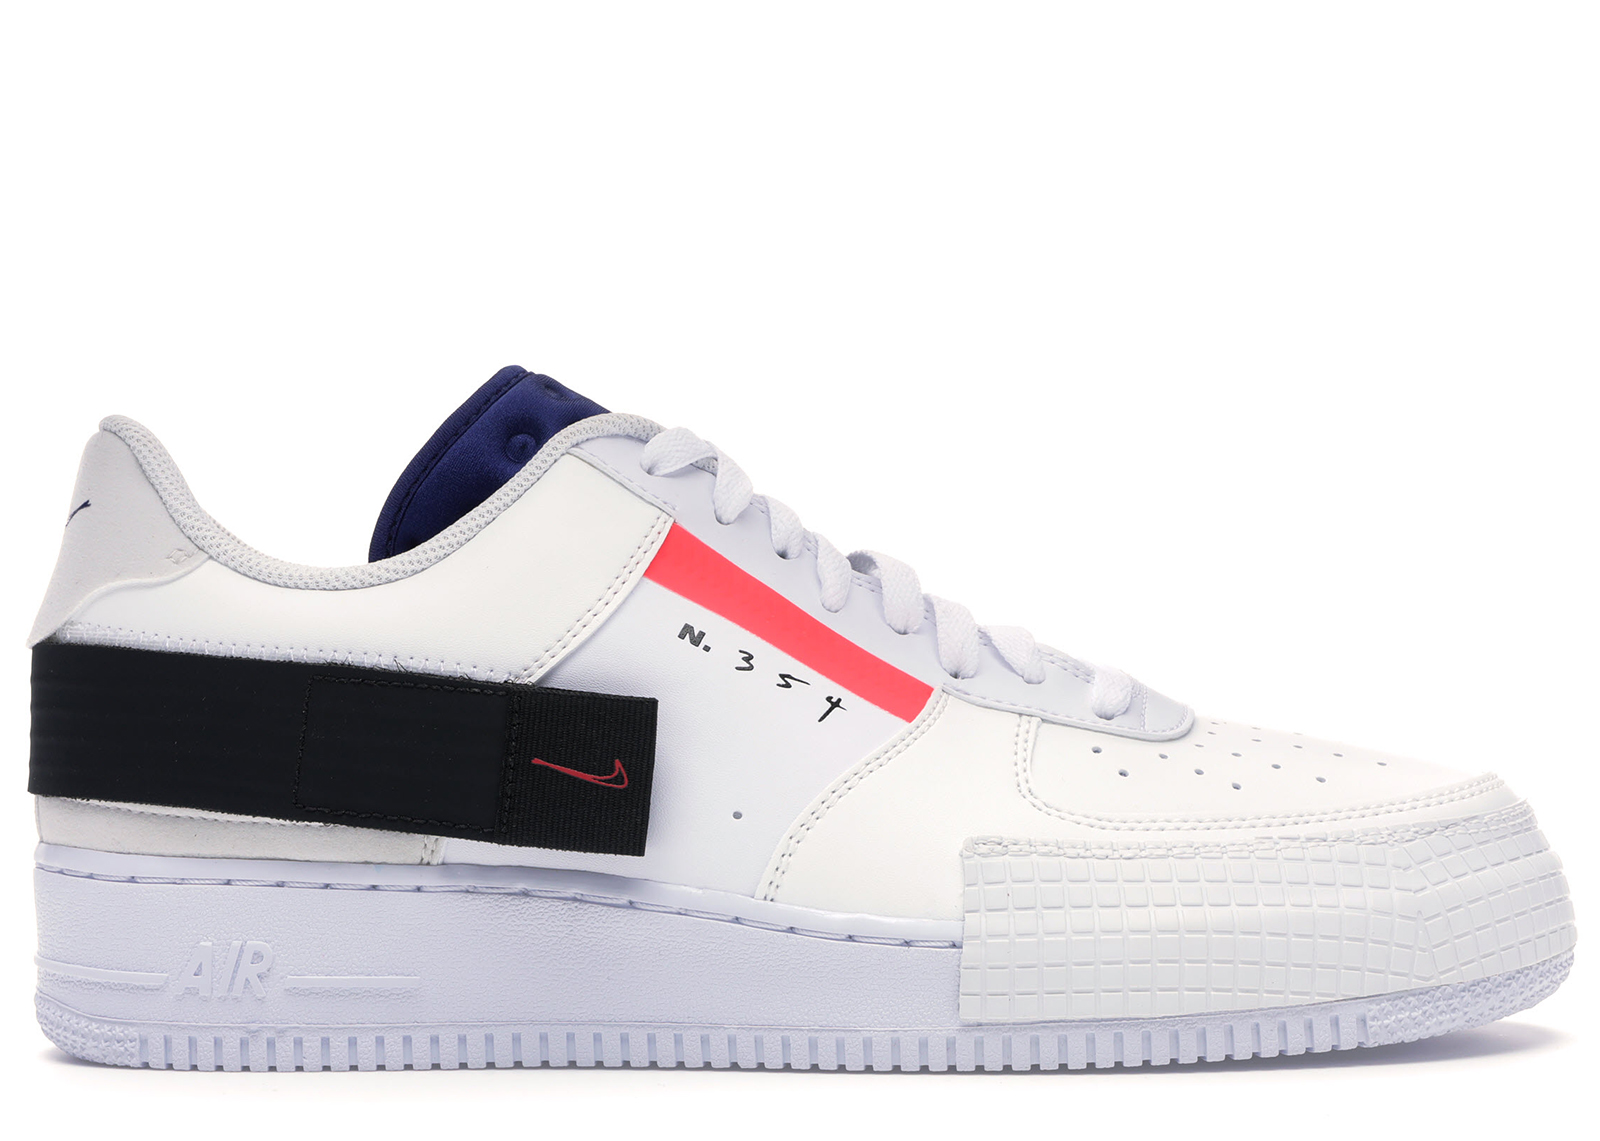 Buy Nike Air Force 1 Shoes & Deadstock Sneakers